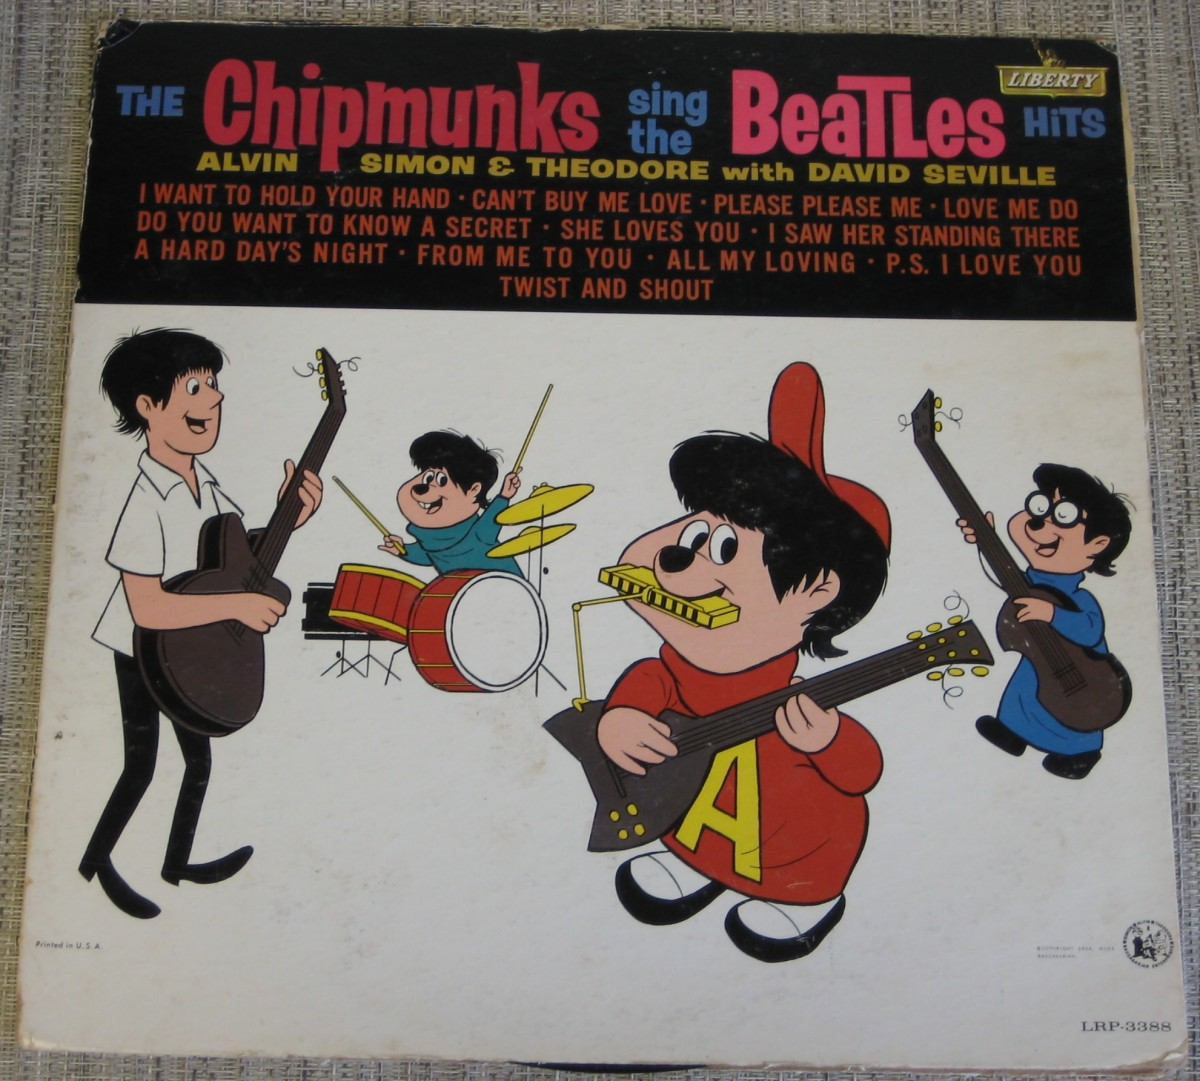 The Chipmunks covered The Beatles on a 1964 album